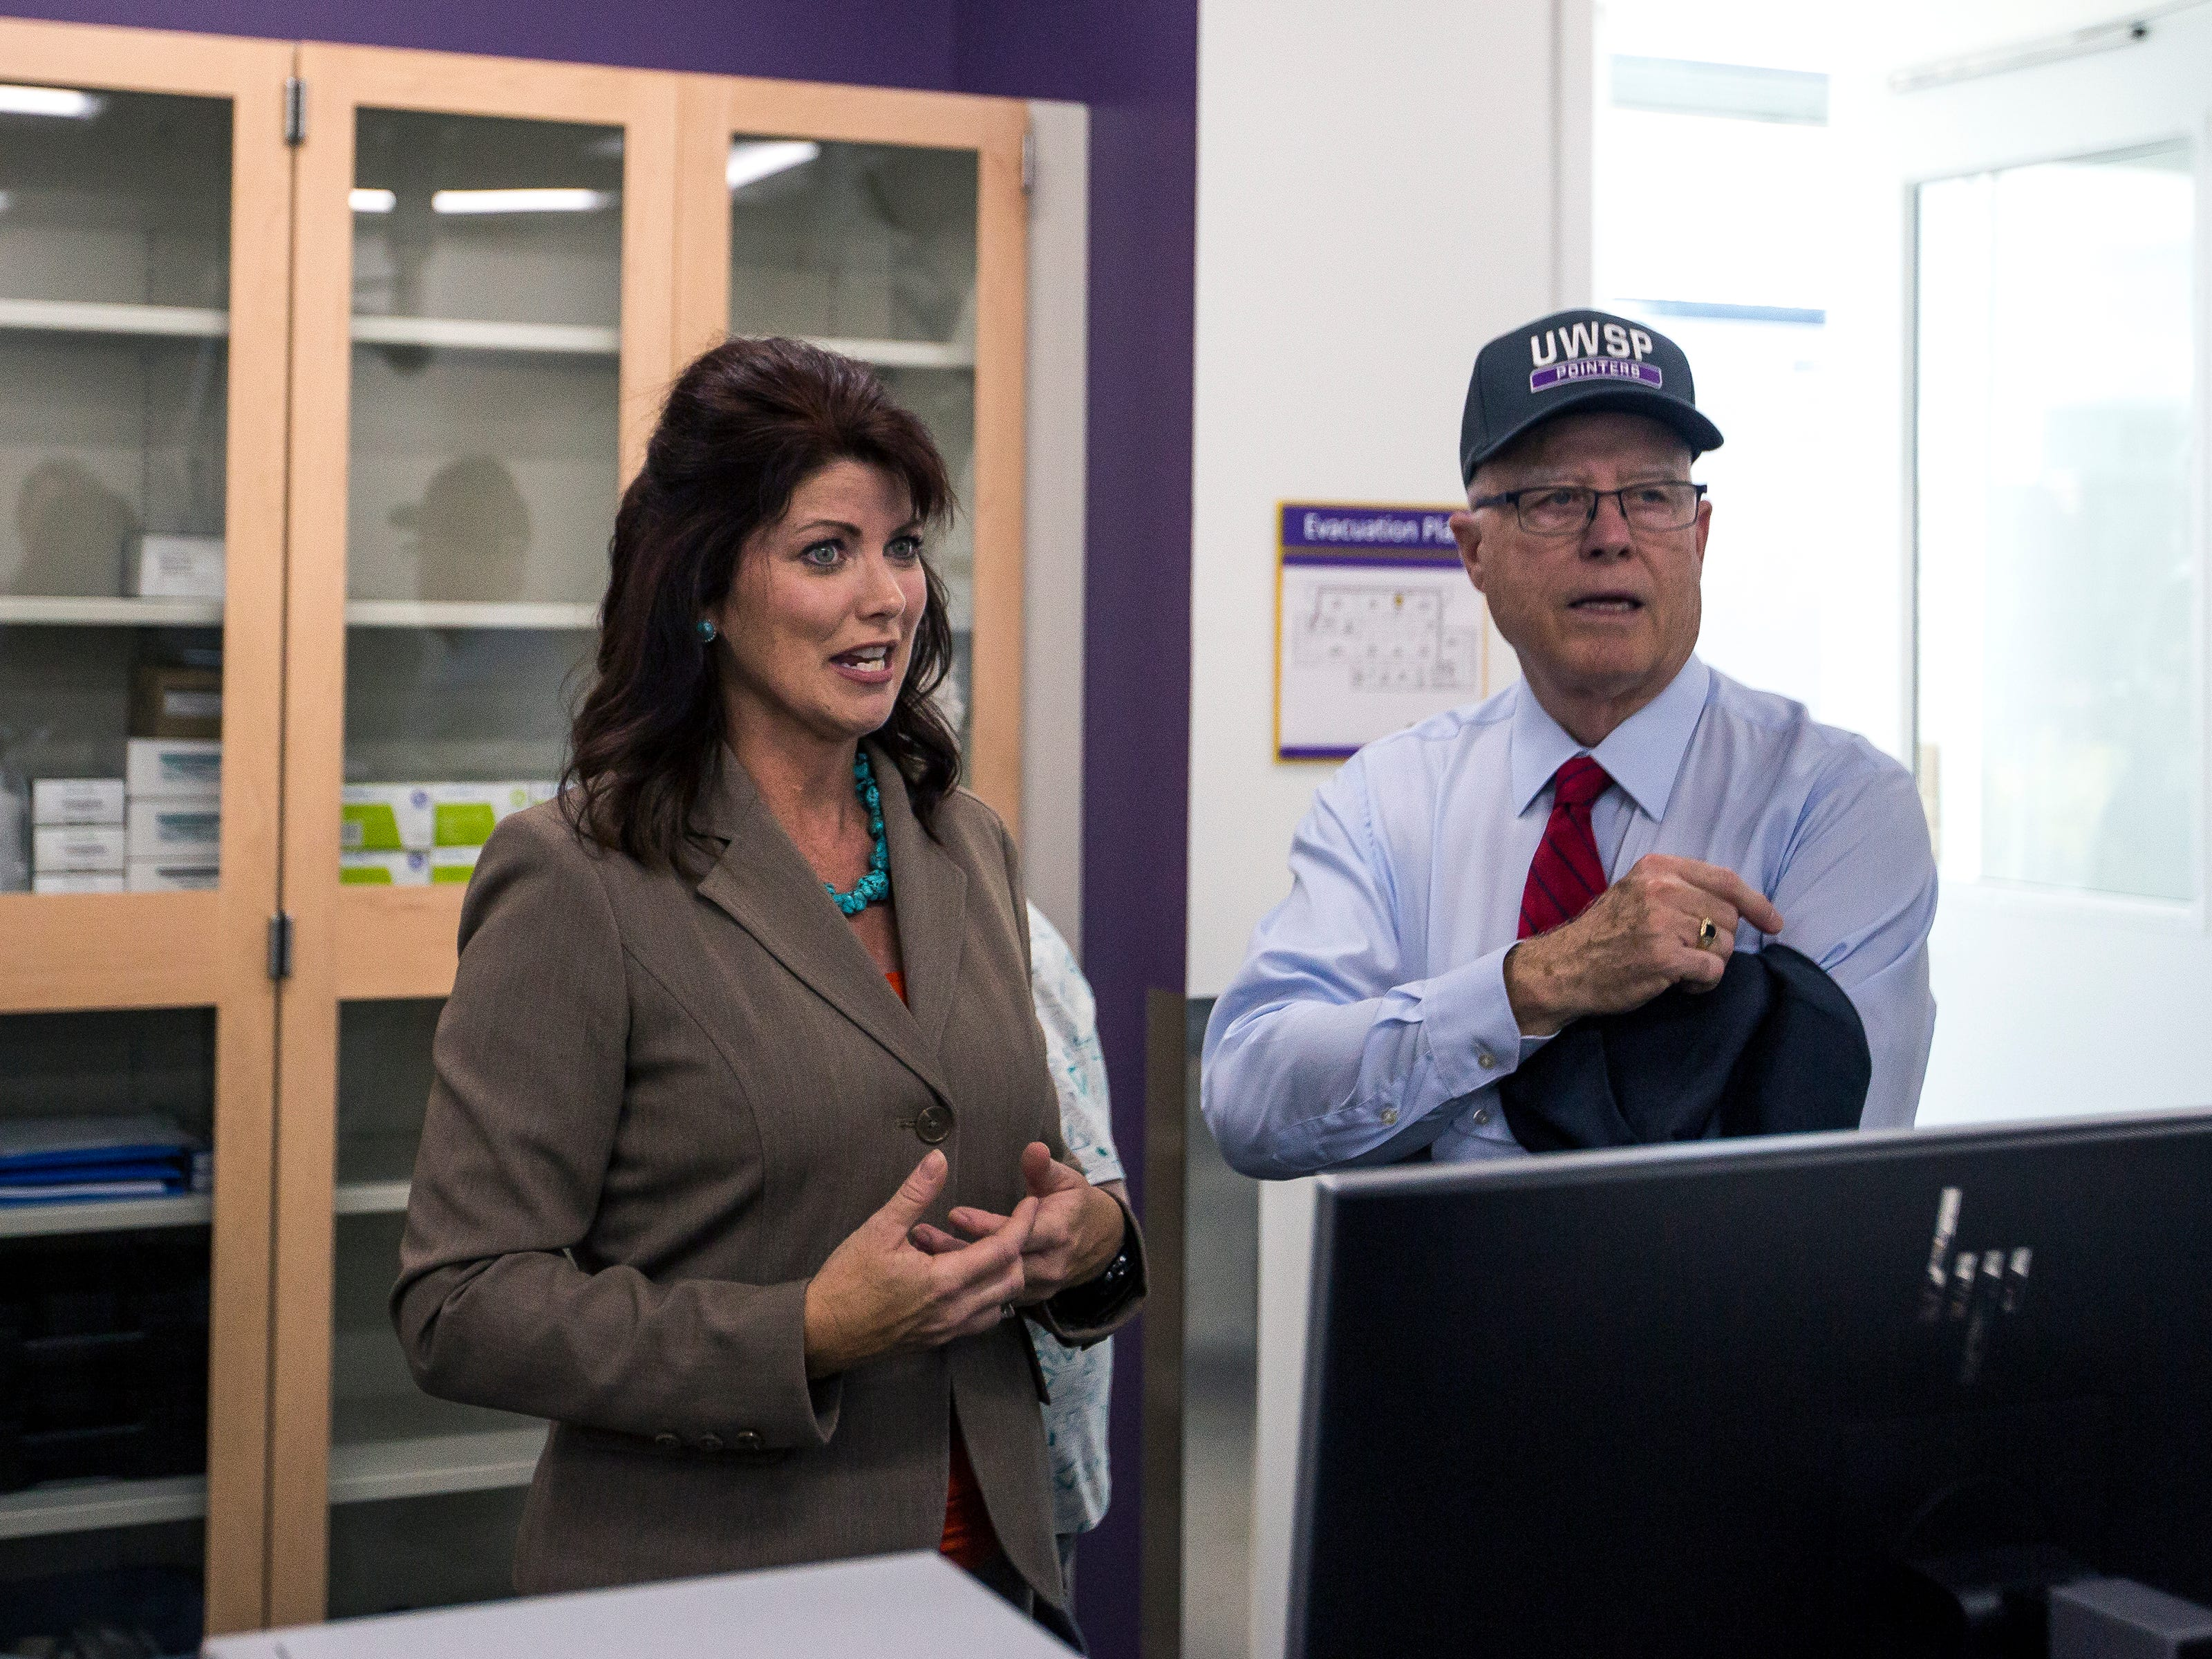 Lt. Gov. Rebecca Kleefisch, left, and Chancellor Bernie Patterson tour a laboratory in the Chemistry Biology Building at the University of Wisconsin-Stevens Point in Stevens Point, Wis., Sept. 14, 2018.